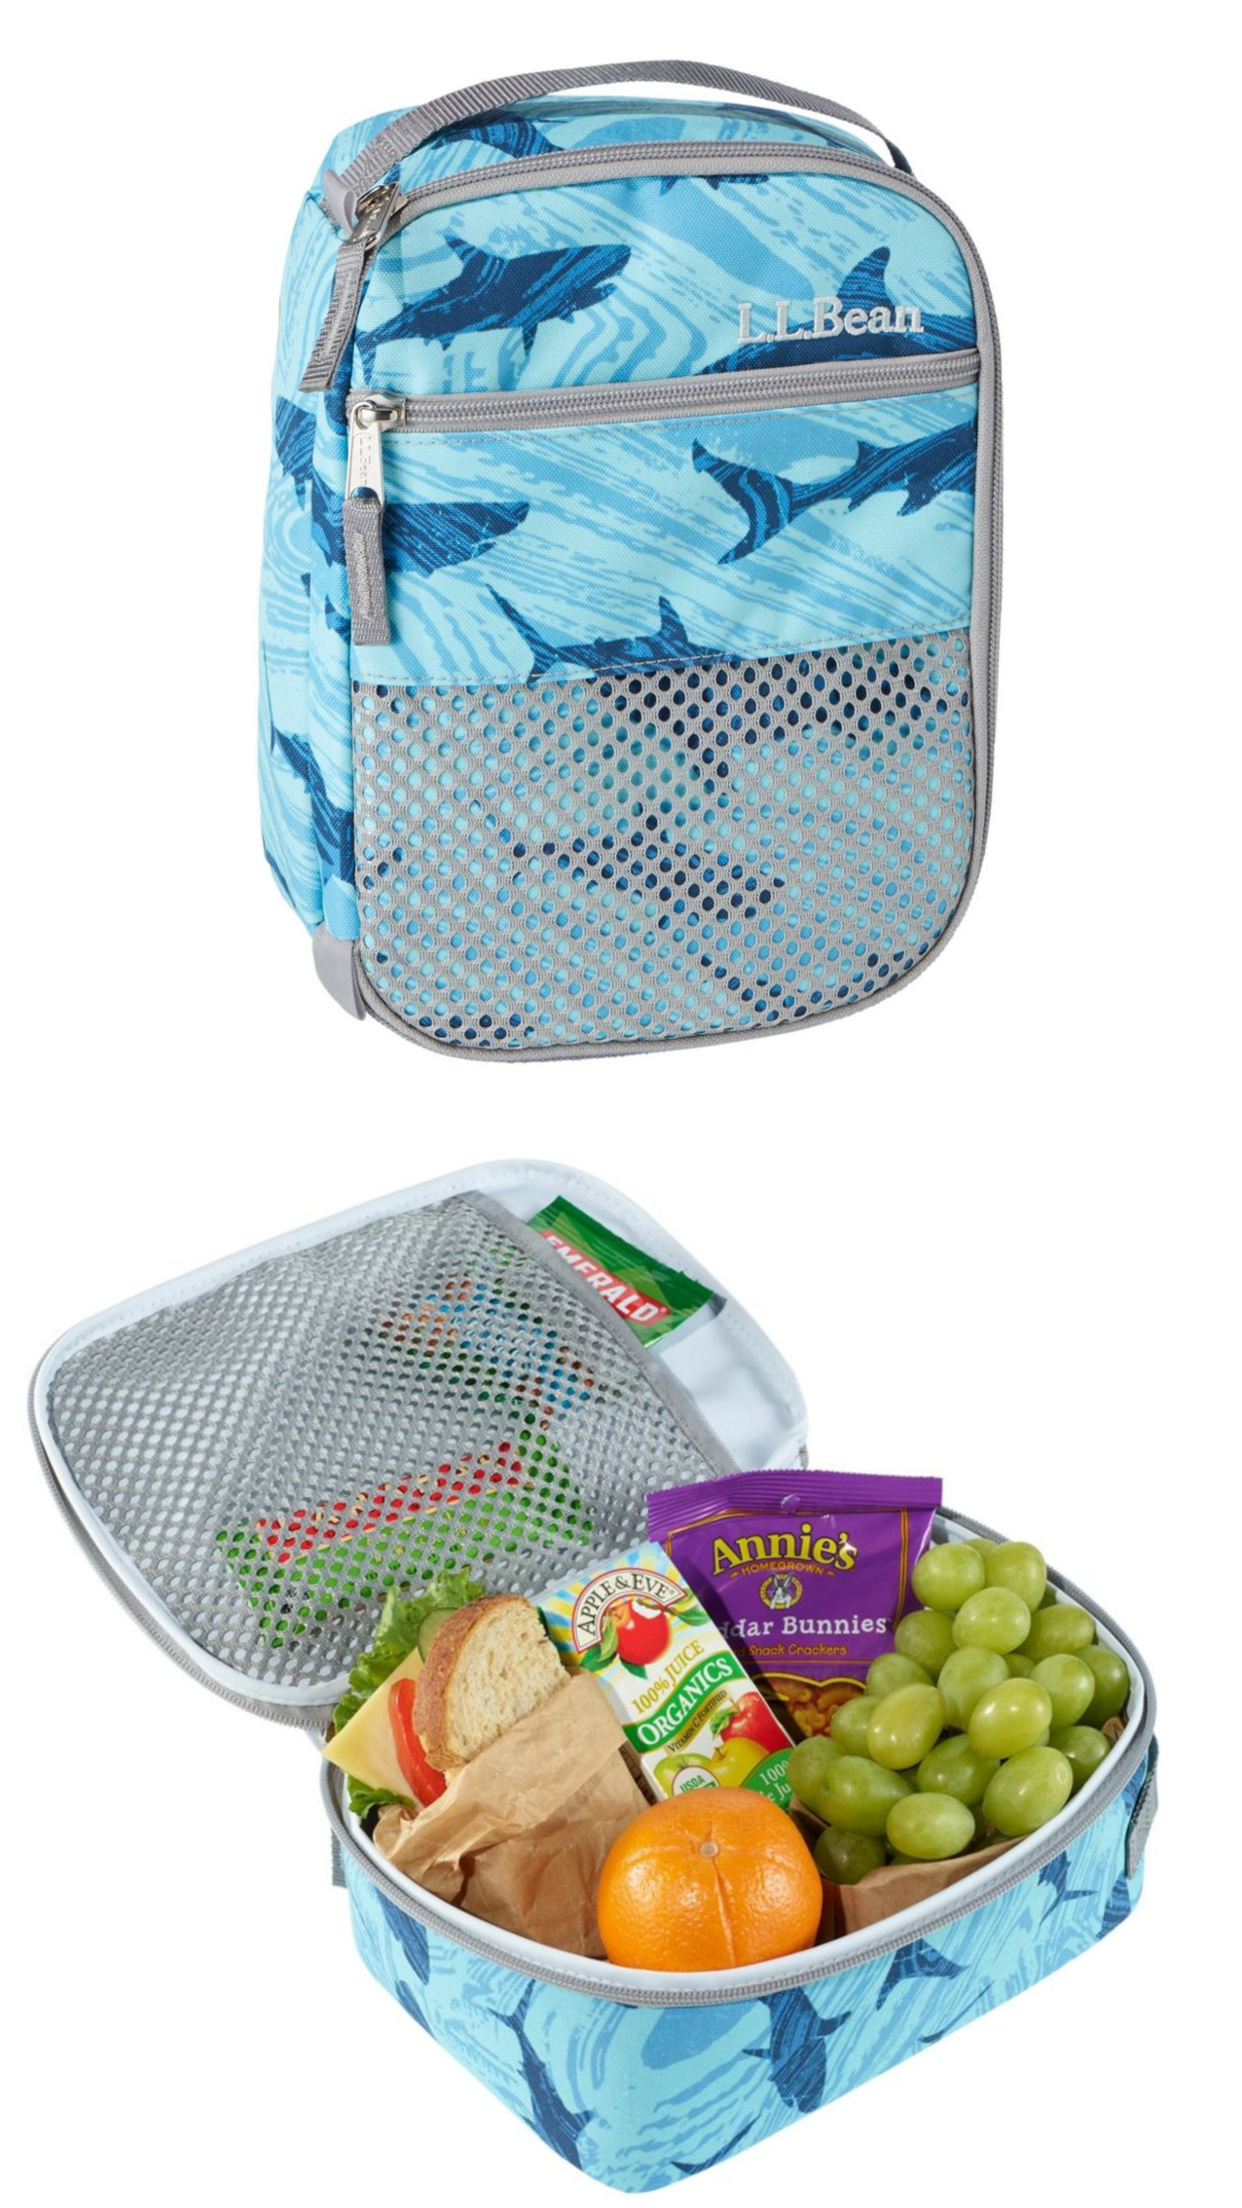 The best insulated lunch bags for school: LL Bean lunch bag